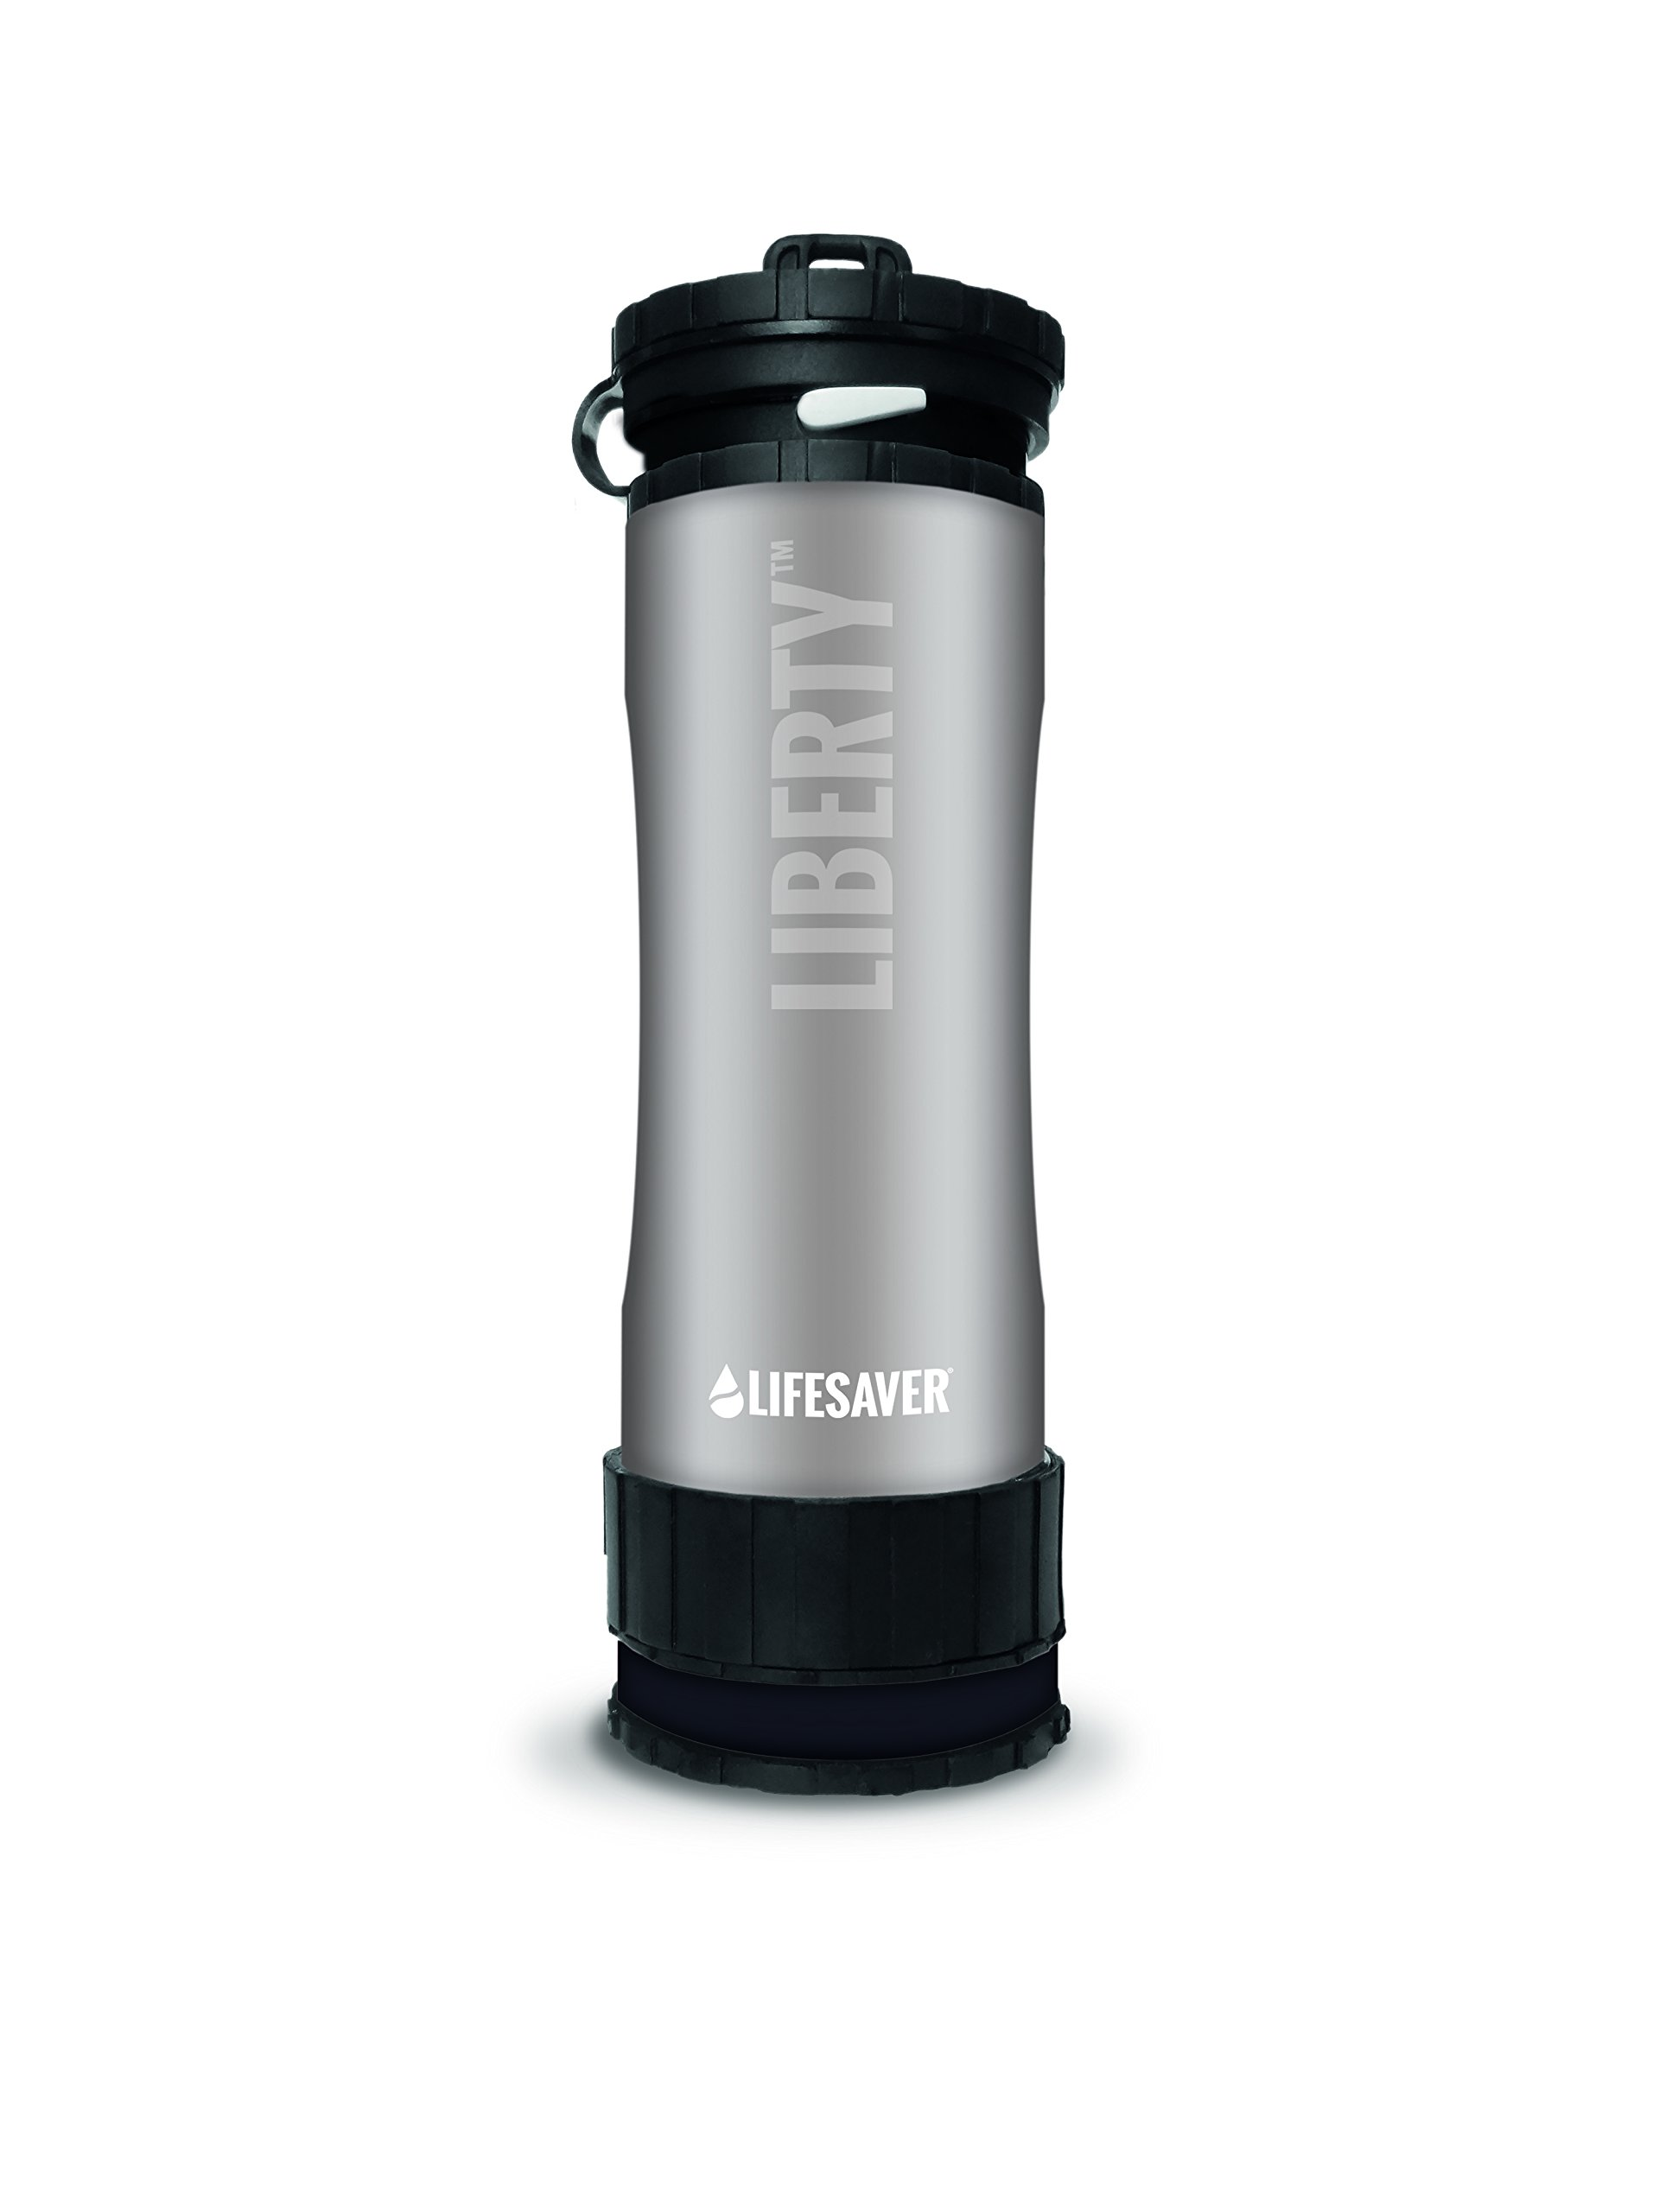 ICON LIFESAVER SYSTEMS Liberty Water Purification System, Silver, 2000L